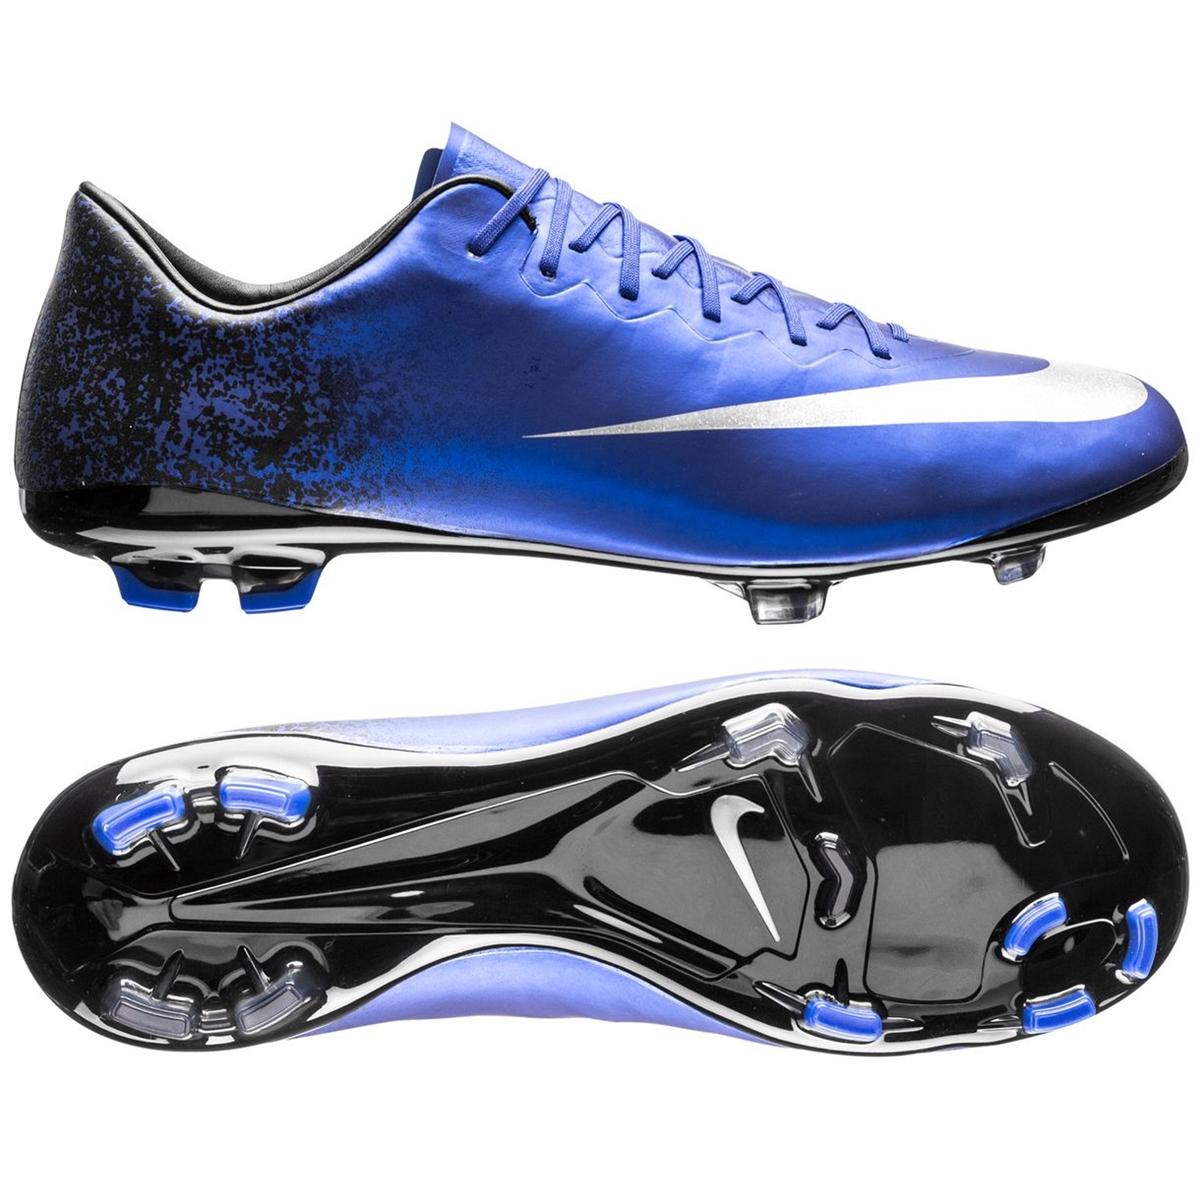 53b6dfd36 ... boot in black rose f3602 fde6d  order nike mercurial cr7 galaxy 7740d  b4497